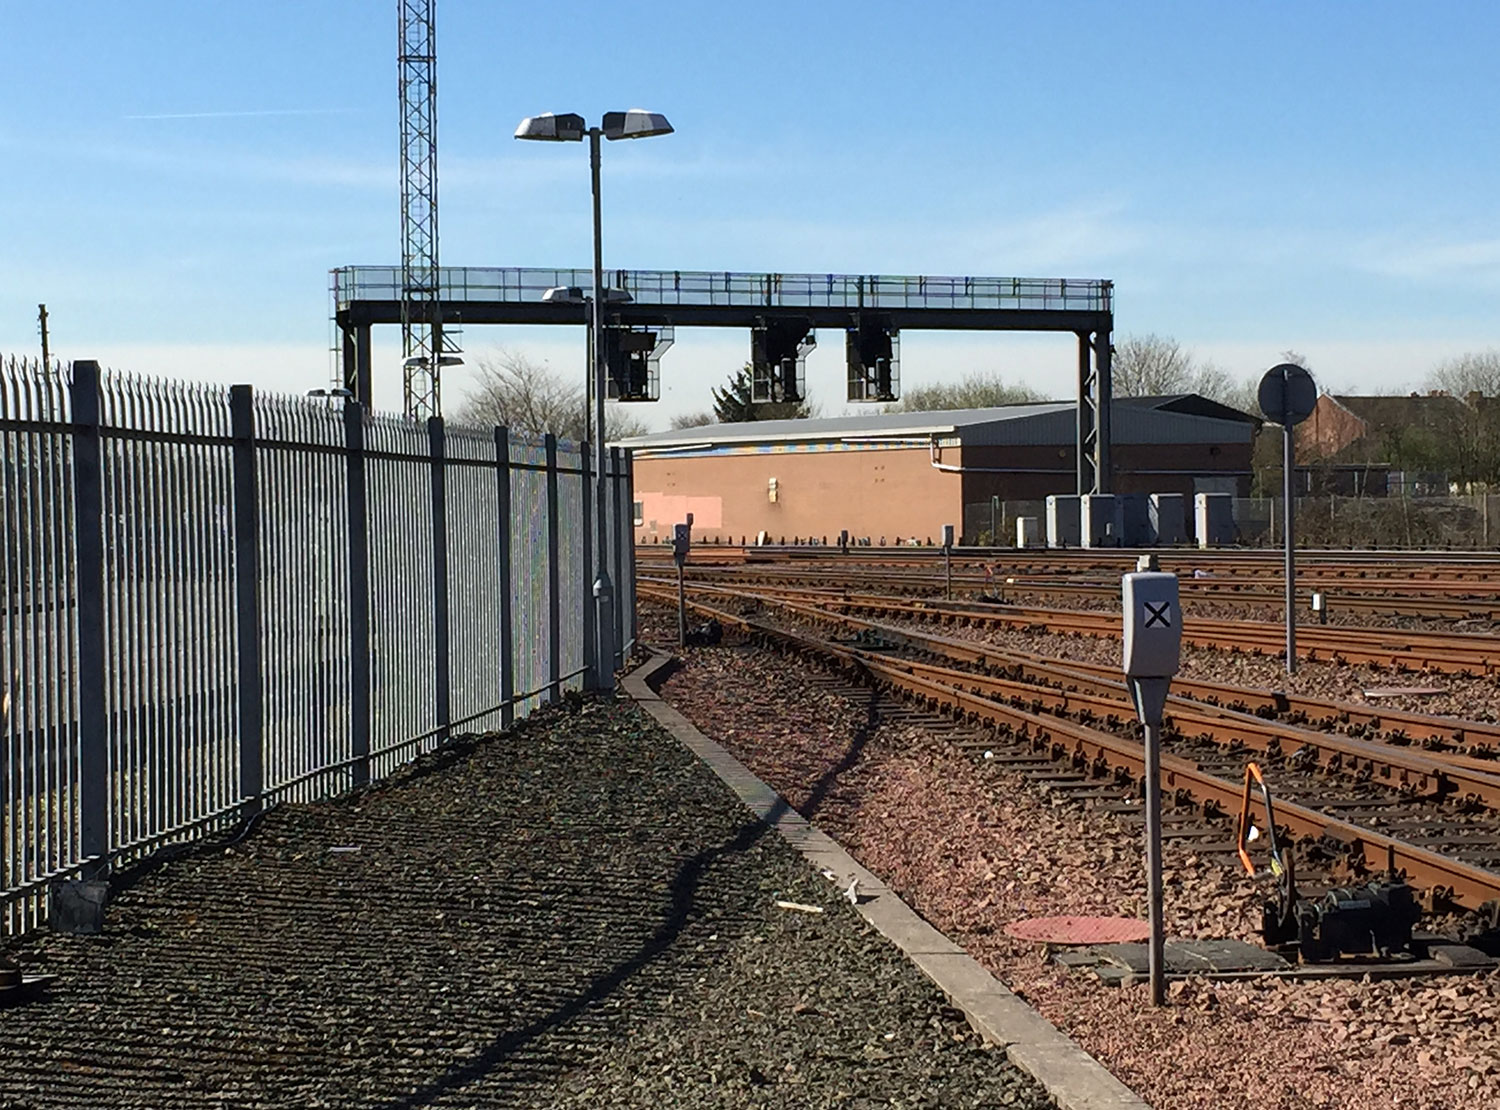 SVM were appointed in a number of roles throughout the EGIP/SDA project scheme delivering detailed design throughout the contract.